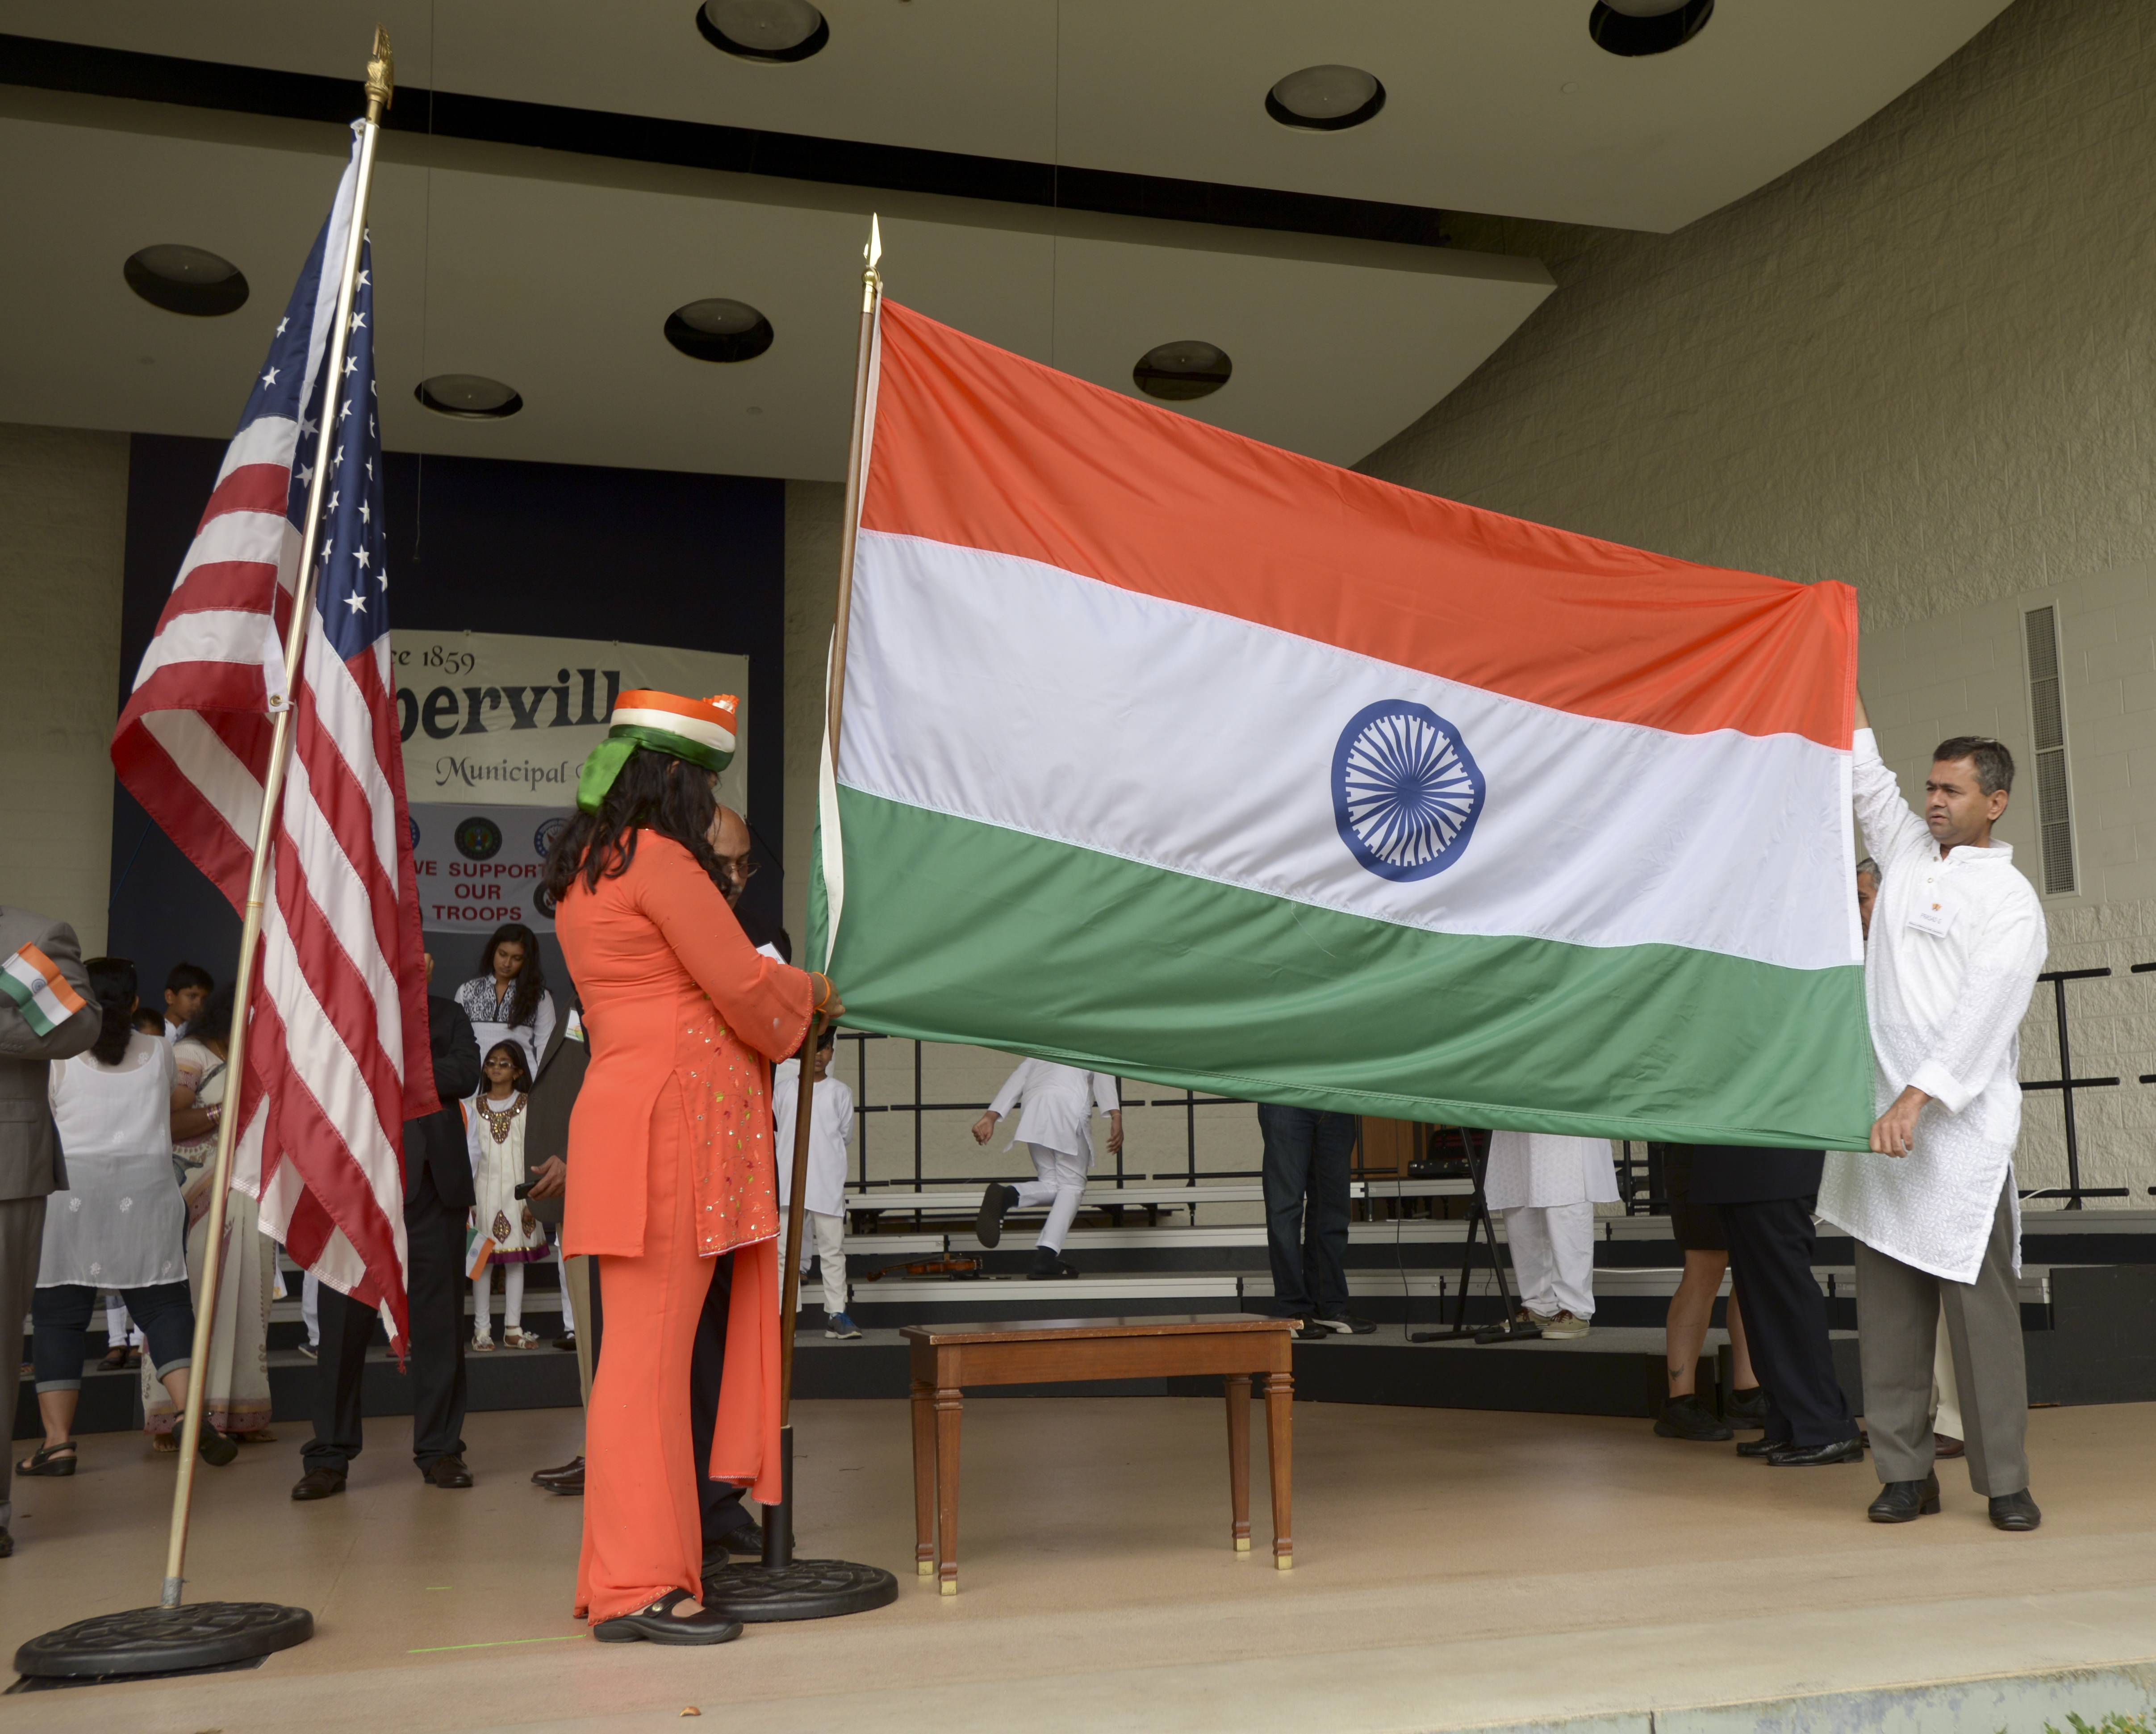 The Indian flag was raised in Naperville on Sunday as hundreds of suburban residents of Indian heritage gathered to celebrate the country's independence day.